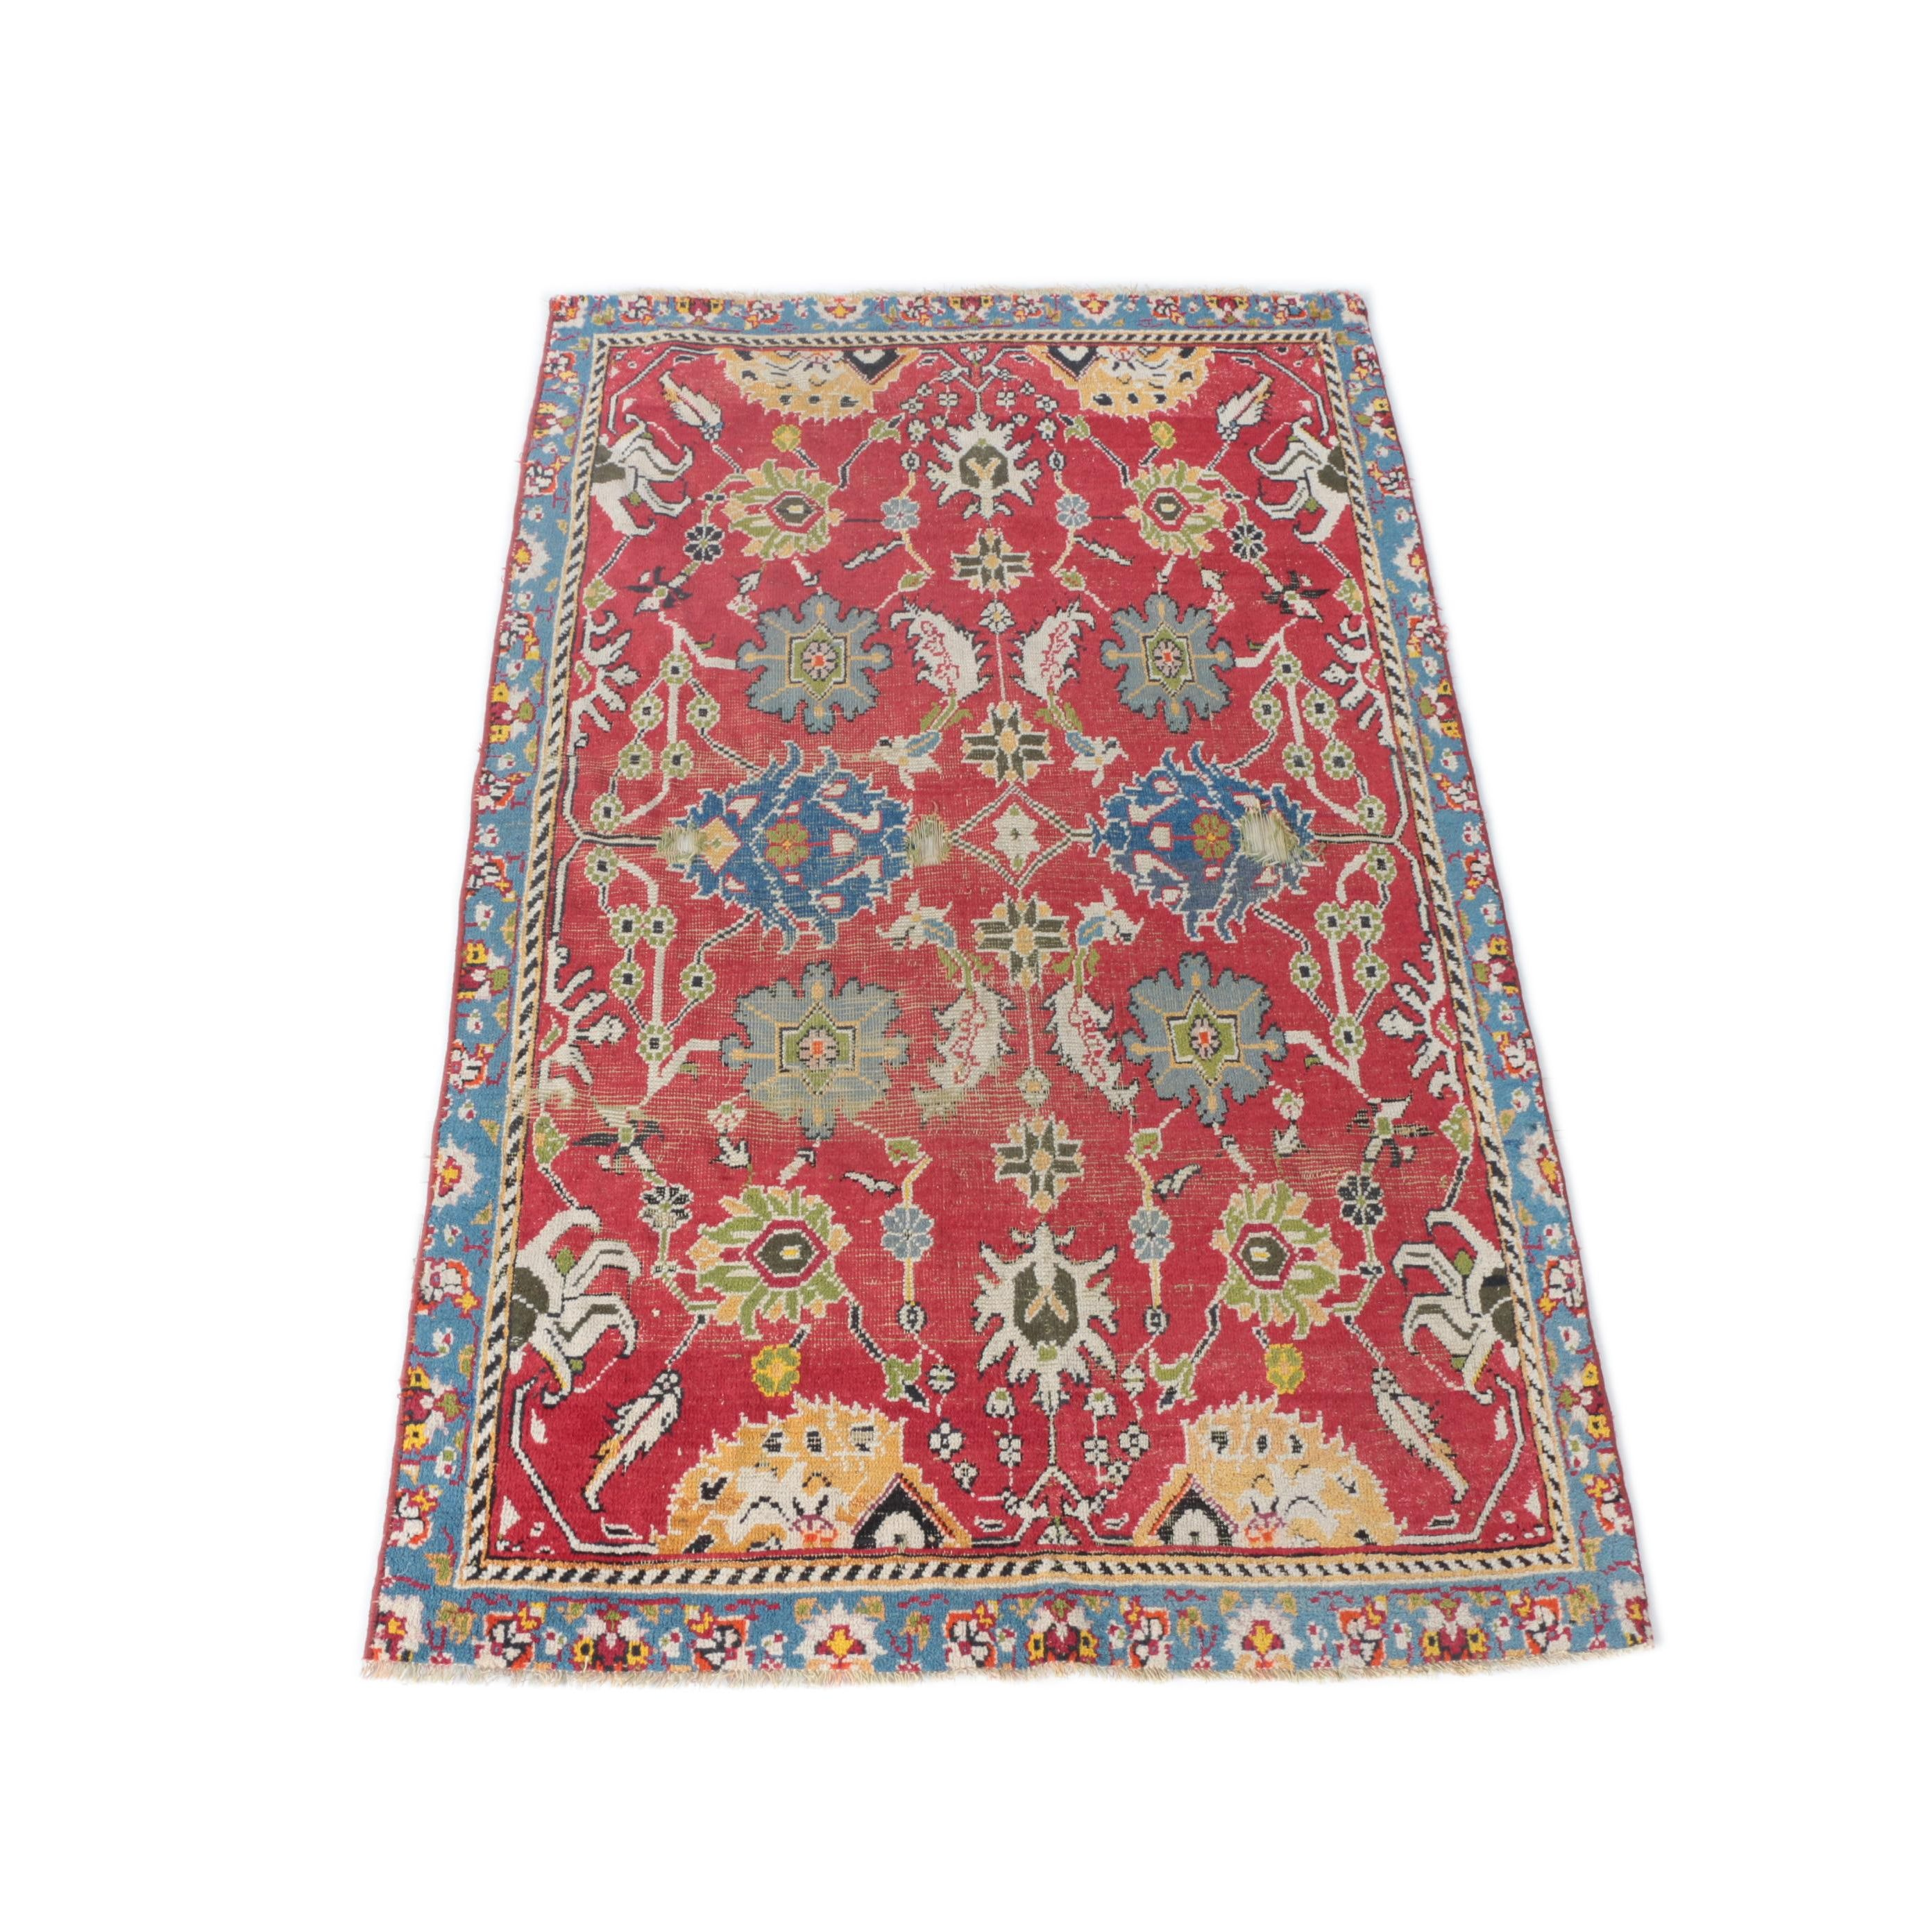 Antique Hand-Knotted Turkish Wool Area Rug